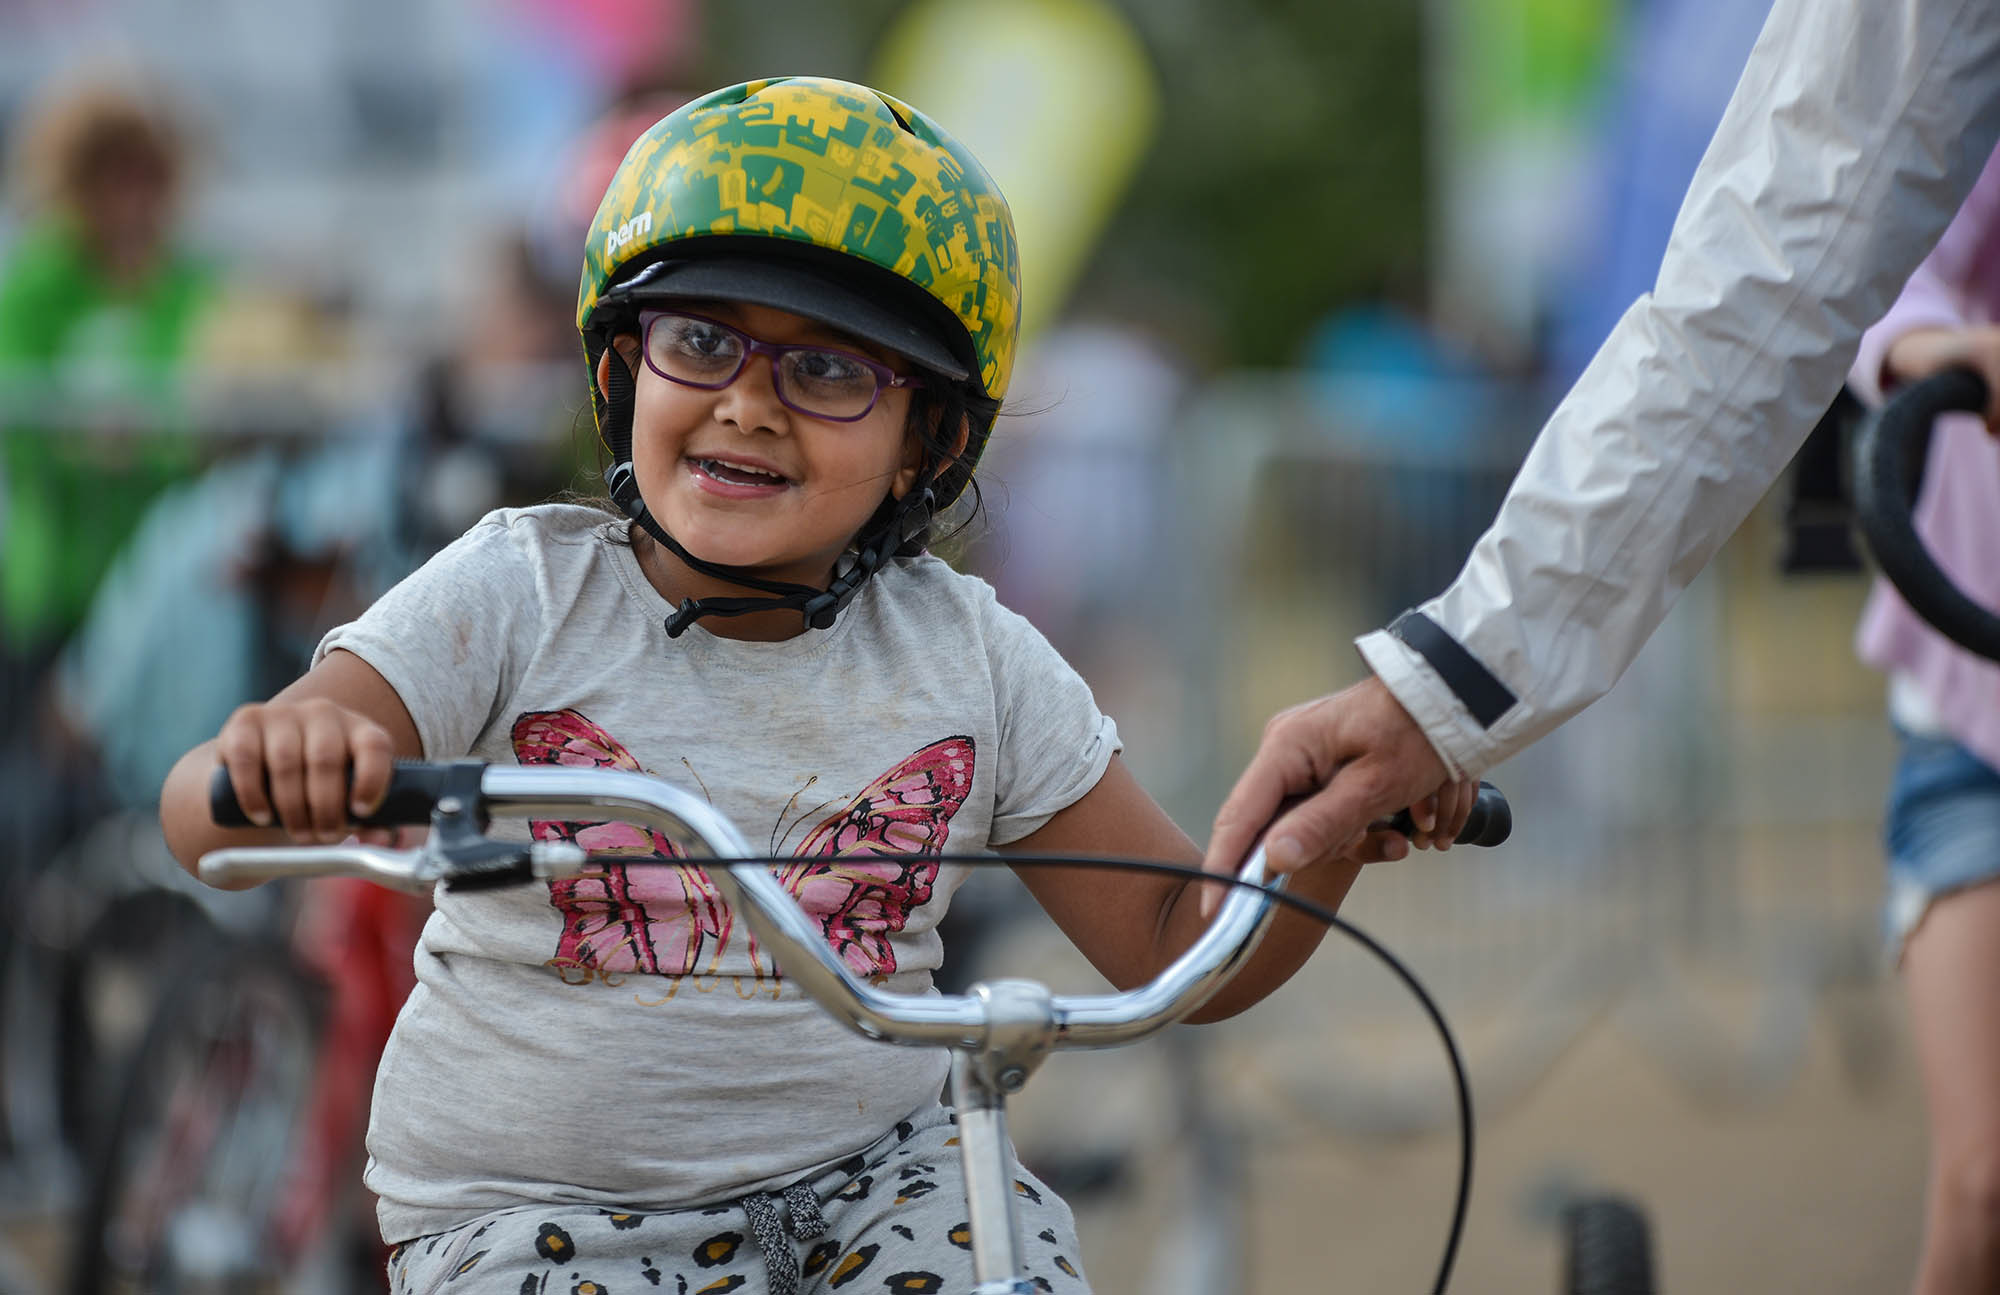 young girl on bike